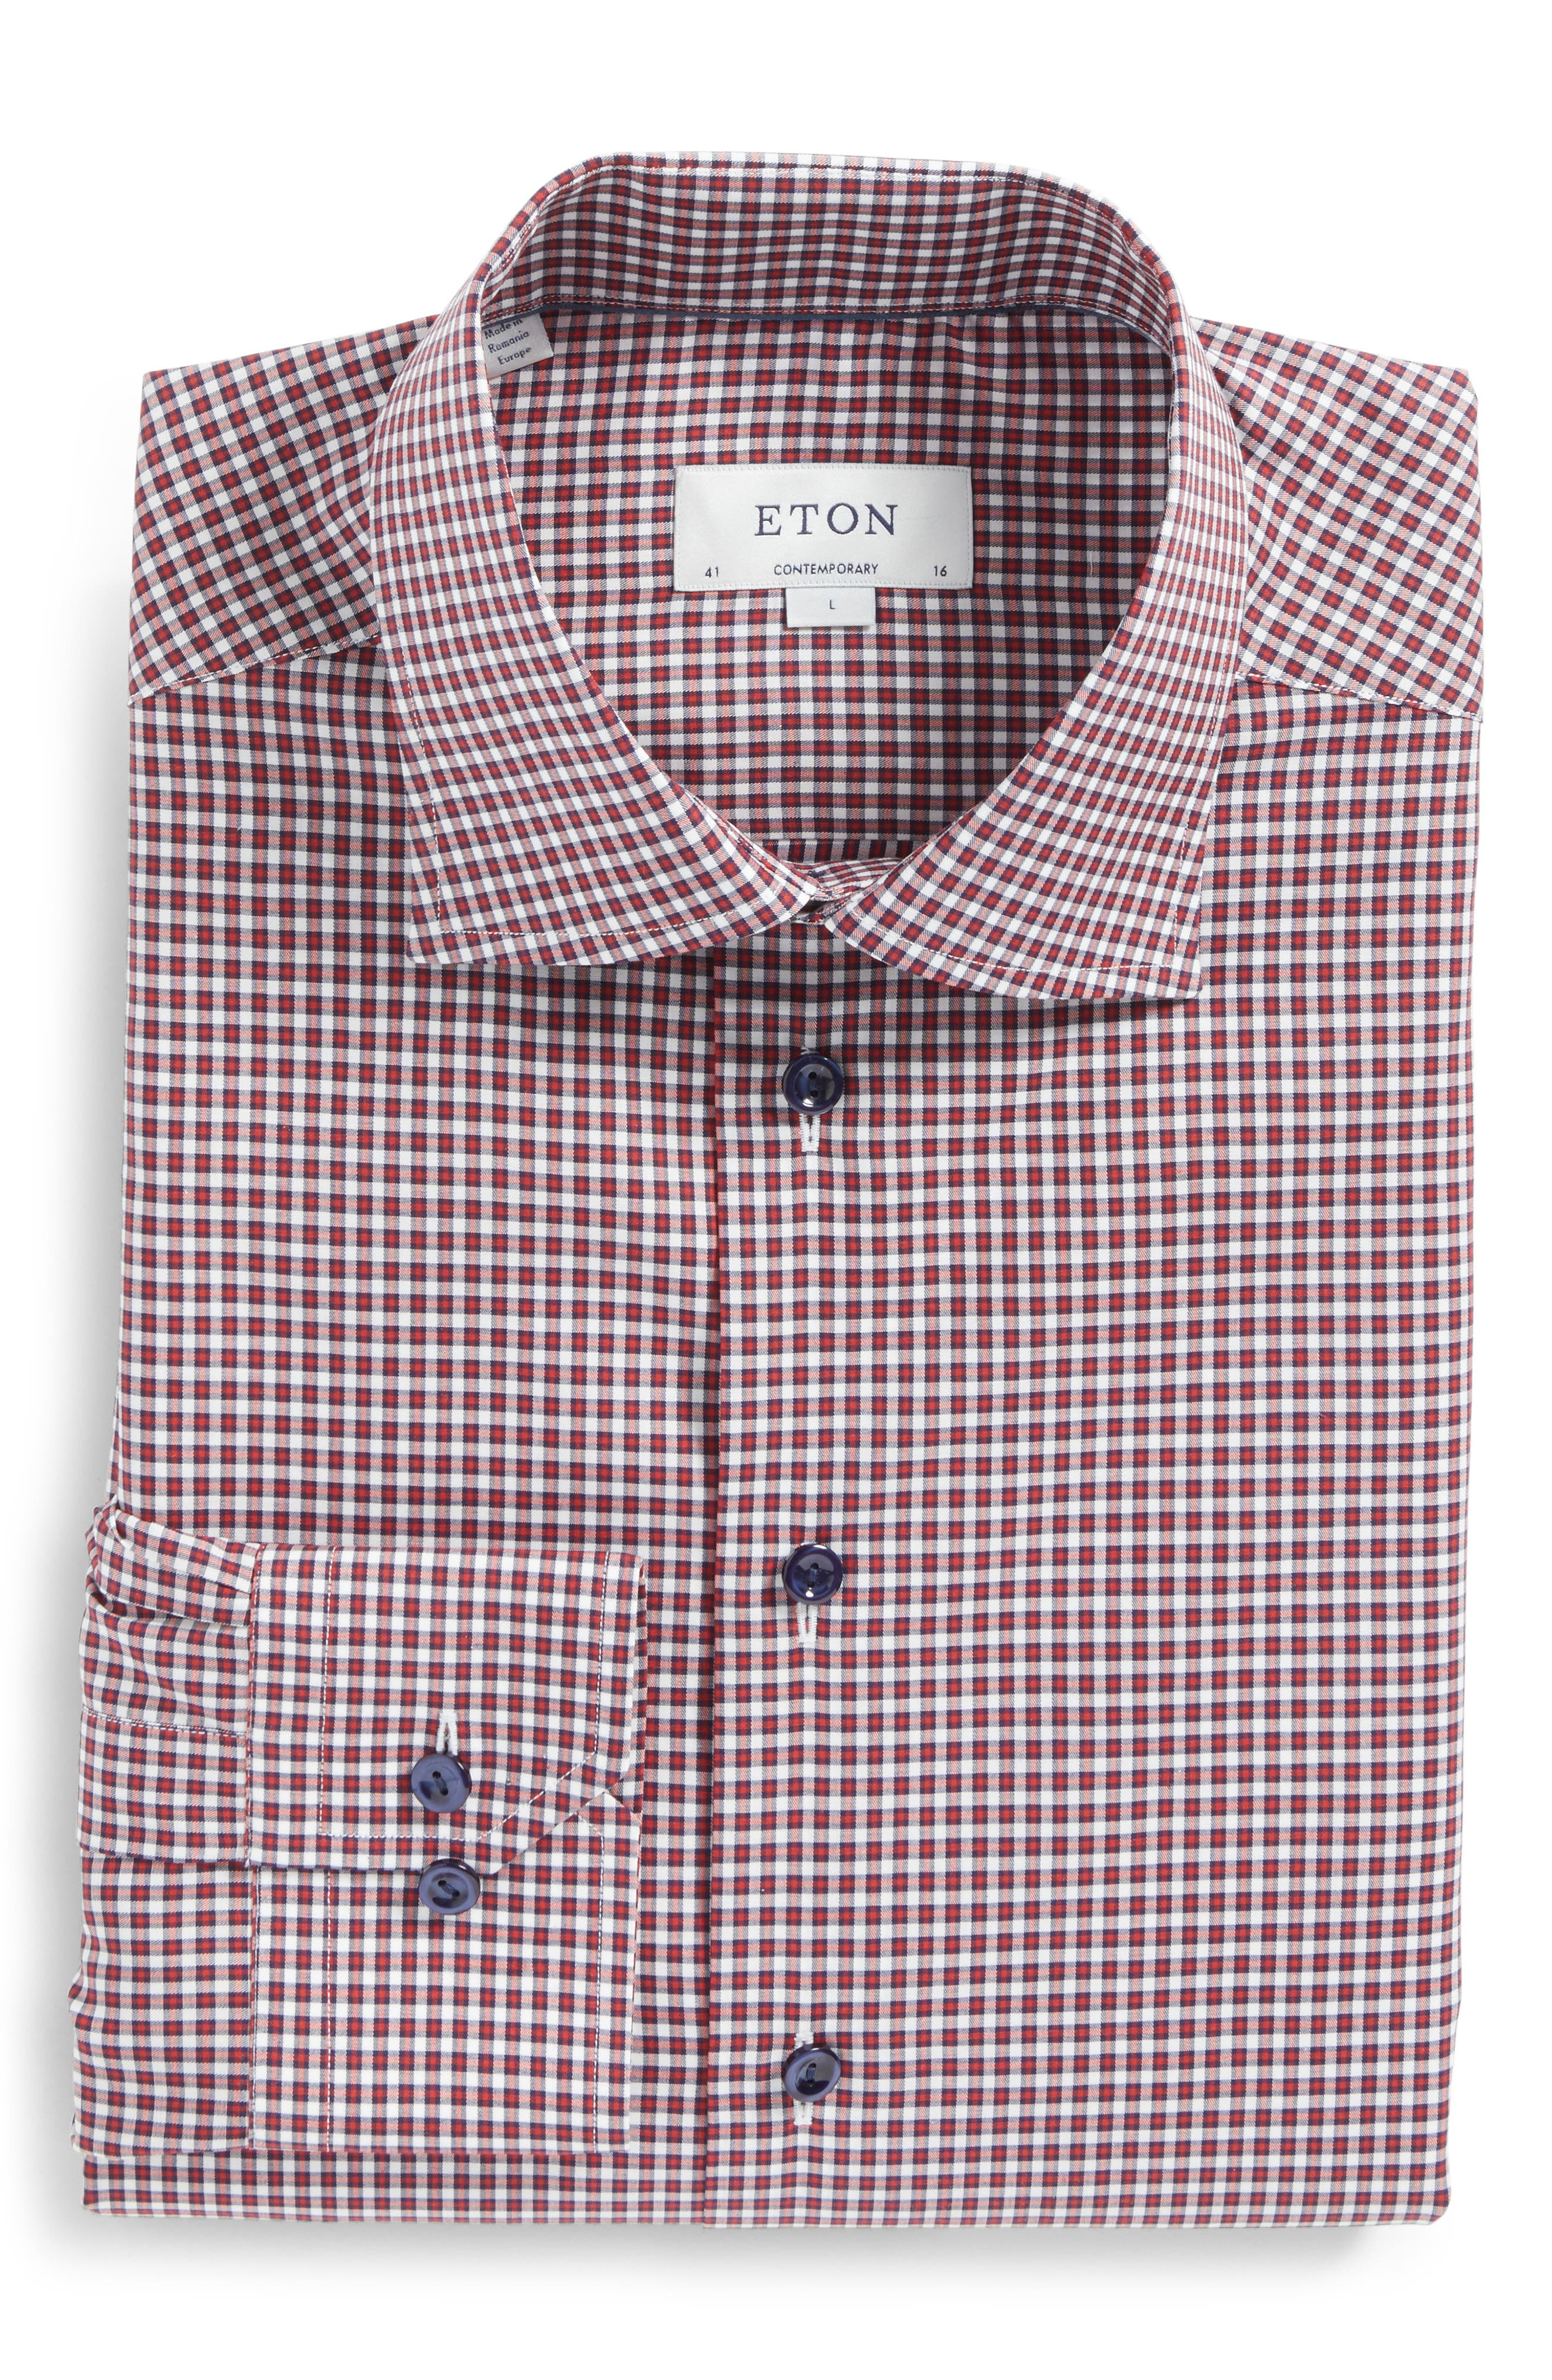 Main Image - Eton Contemporary Fit Check Dress Shirt